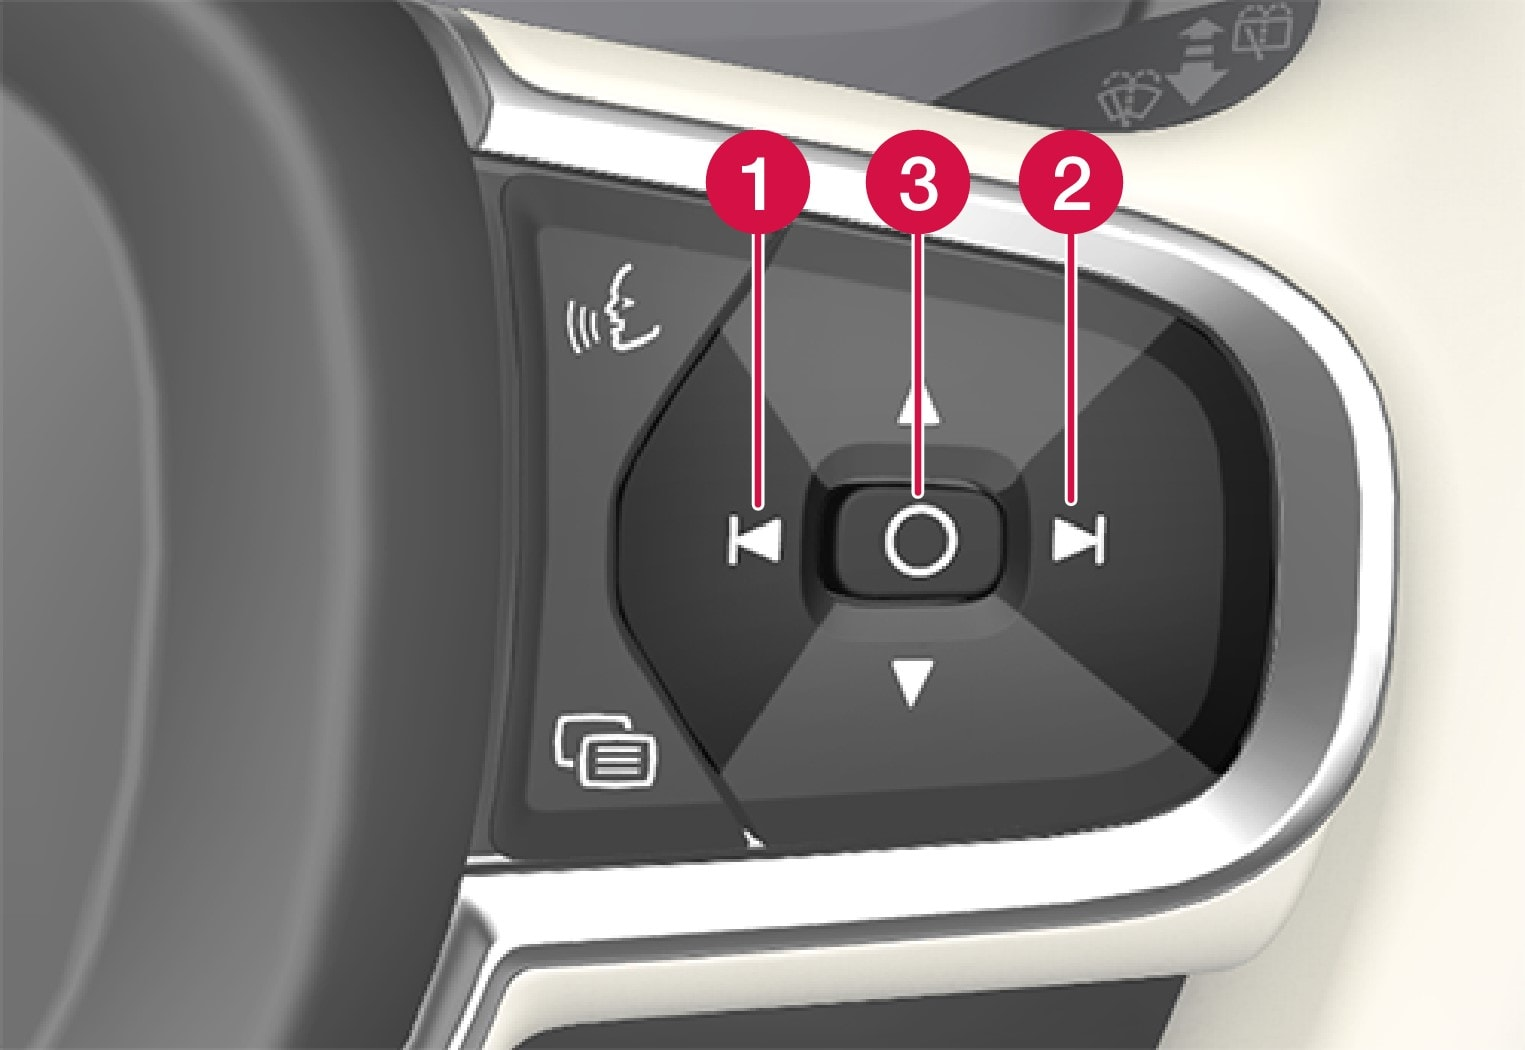 P5 Right steering wheel buttons_left_right, HUD